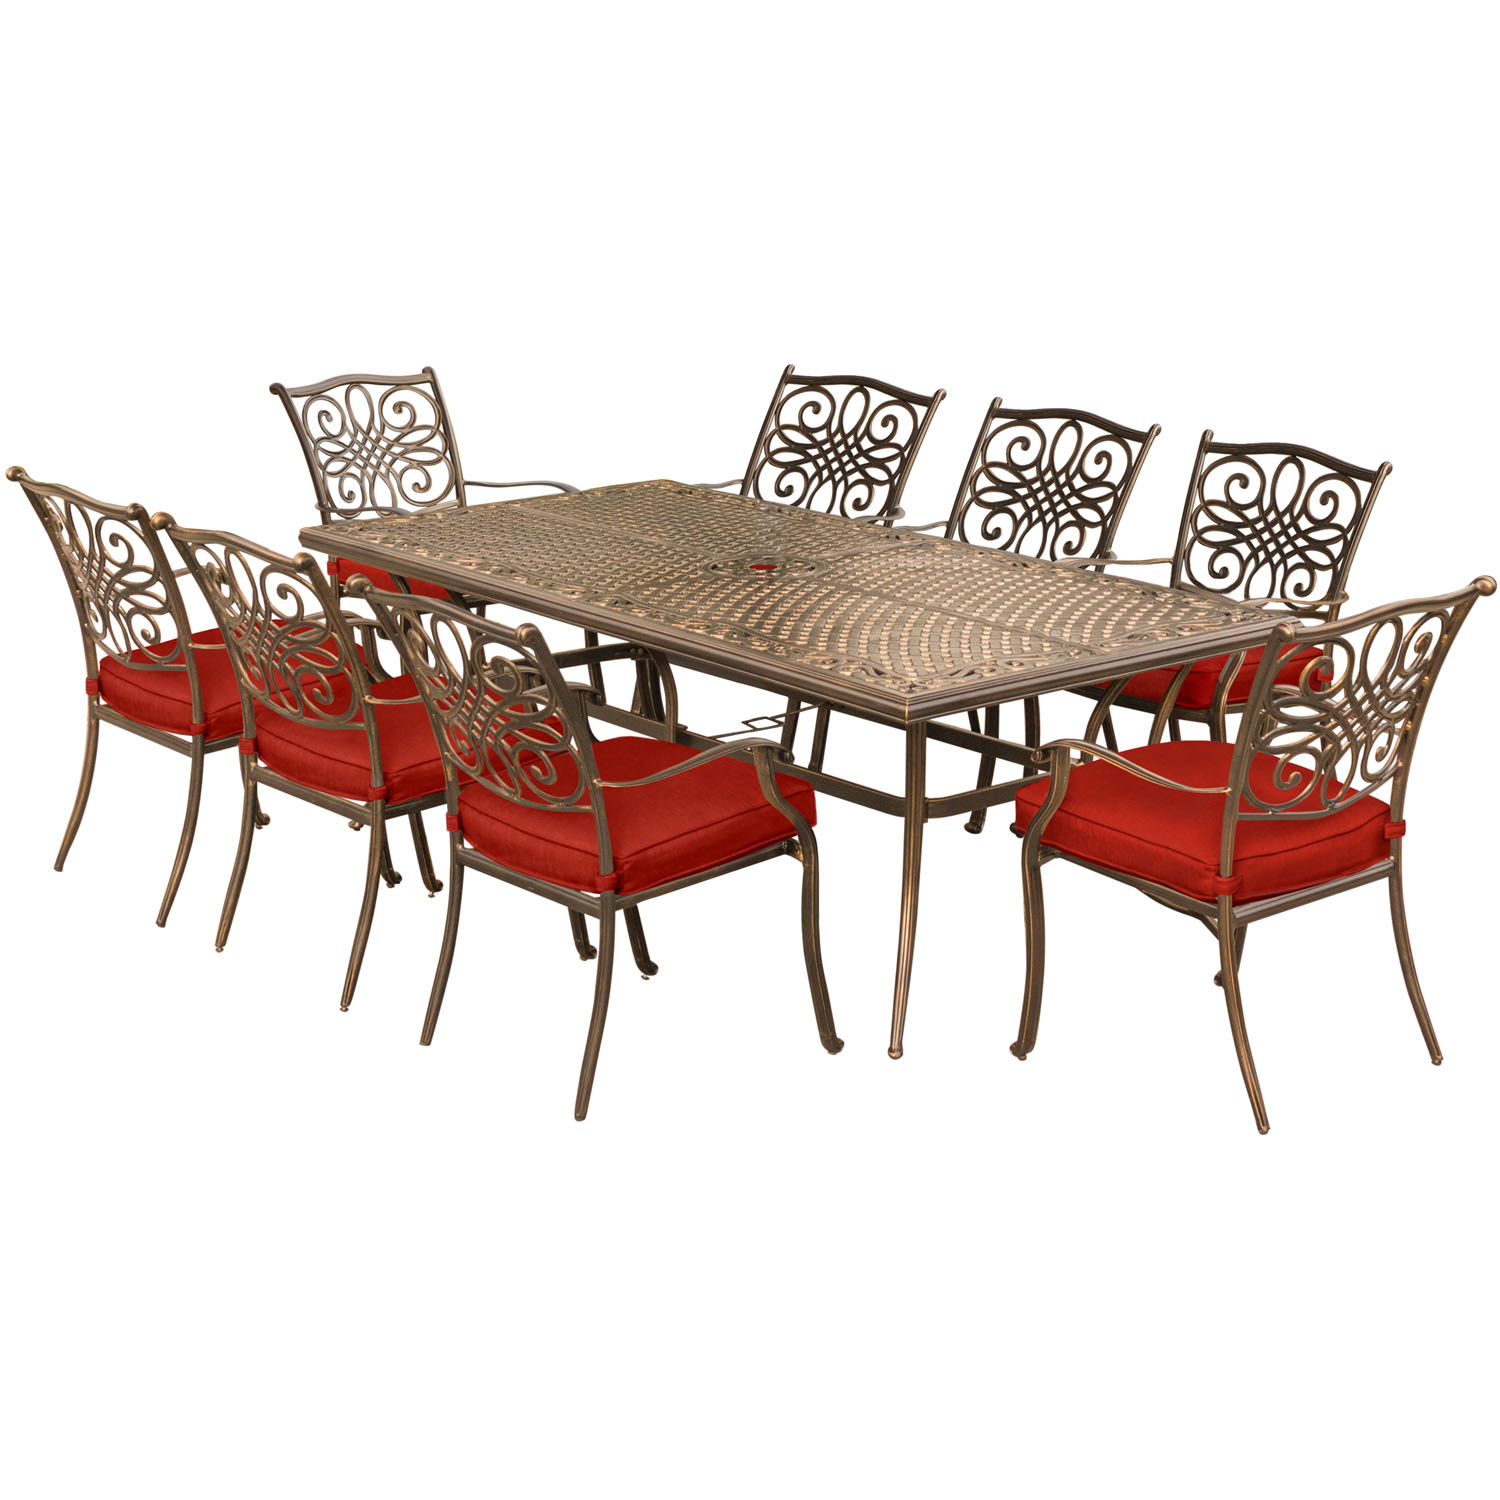 Hanover Traditions 9-Piece Outdoor Dining Set with Cast-Top Table and 8 Stationary Chairs